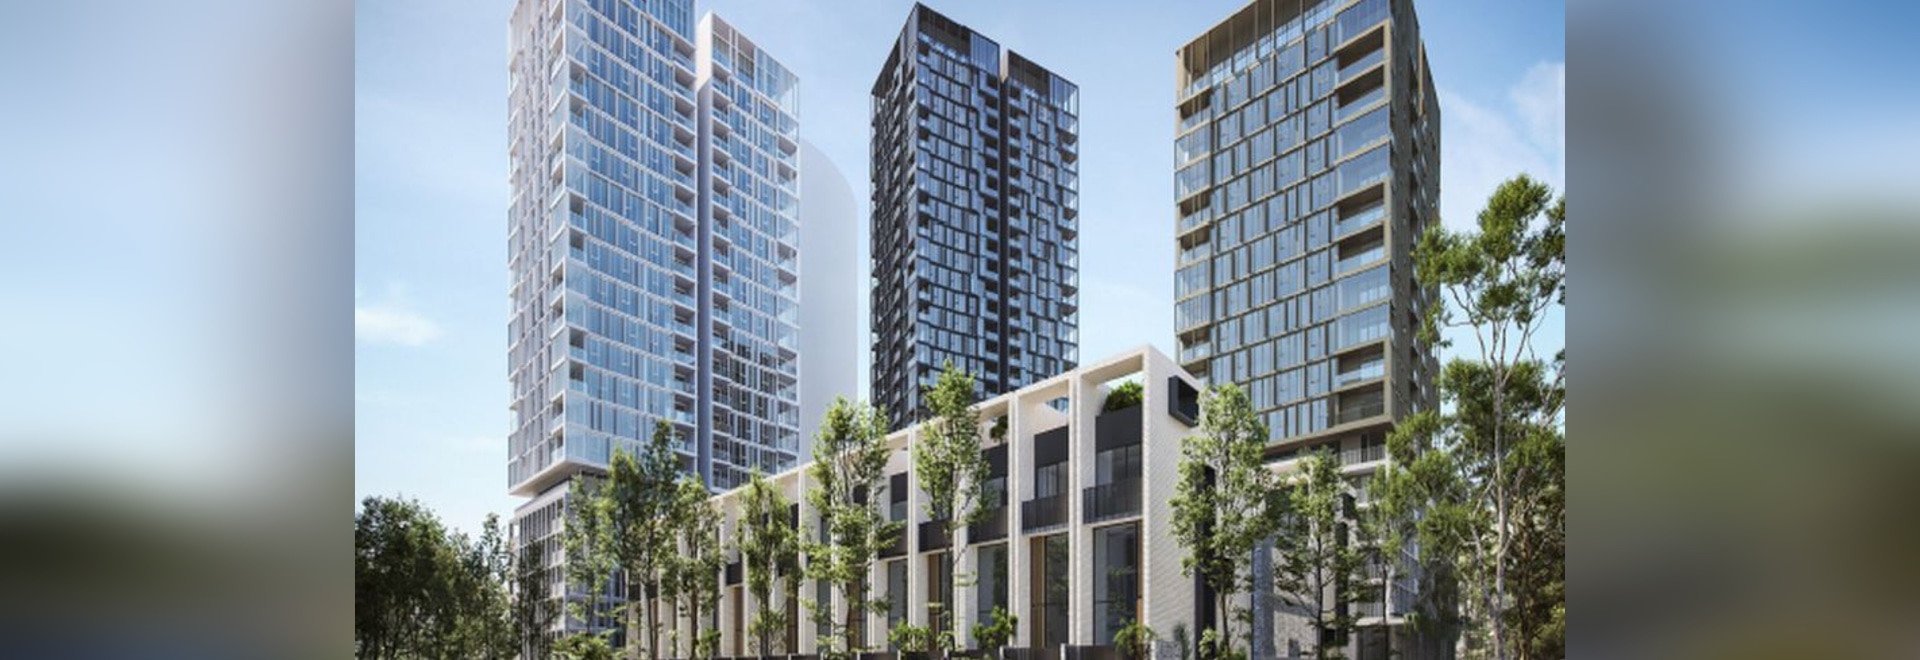 The 5 Uhrig Road development by BVN.